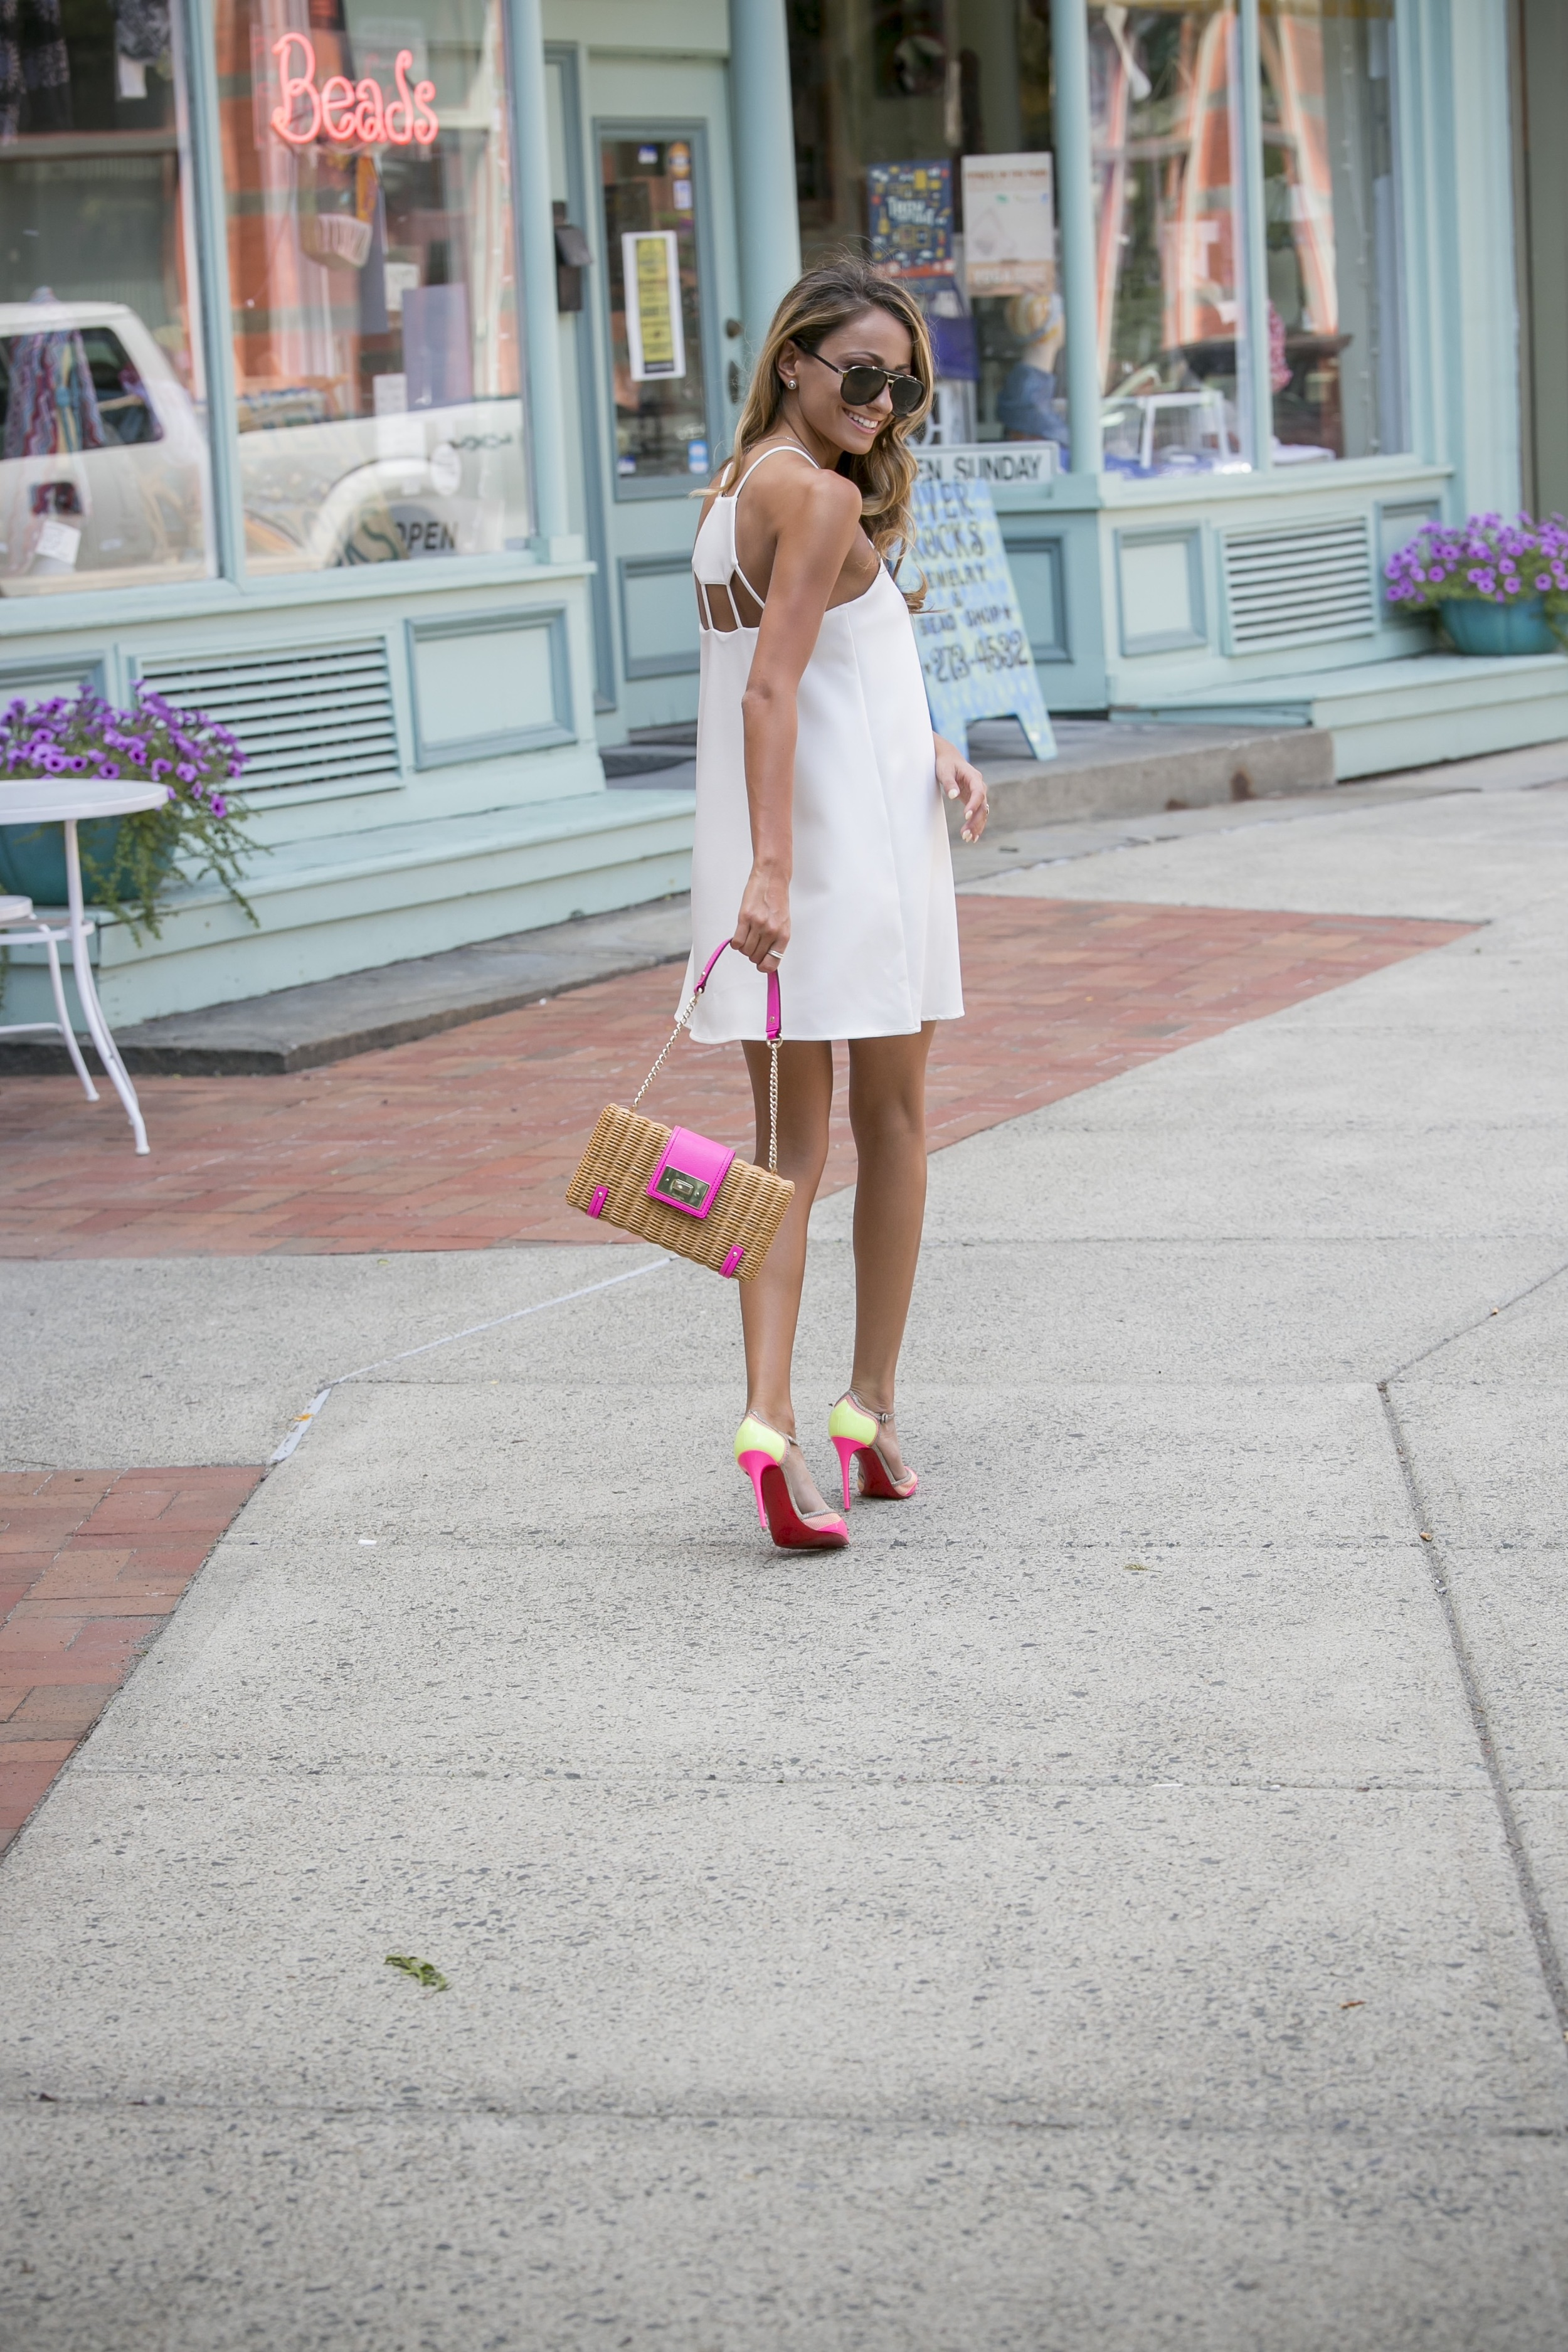 Dress: JOA |Pumps:Christian Louboutin( still available in flats )|Bag:Kate Spade(older)   Dino Petrocelli Photography